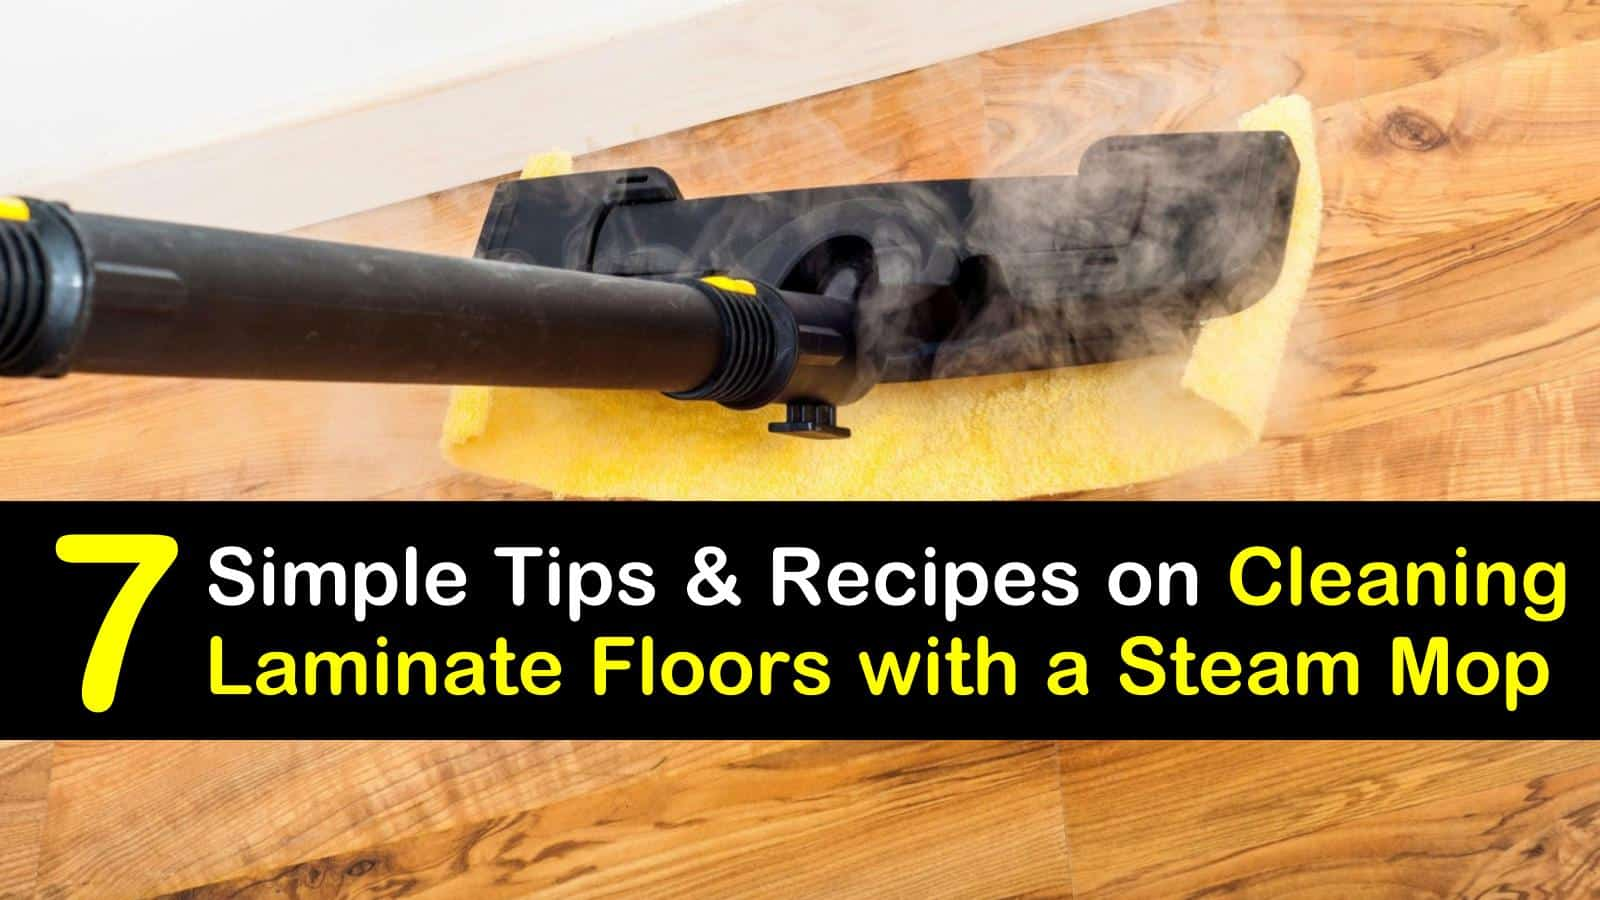 7 Simple Tips For Cleaning Laminate Floors With Your Steam Mop